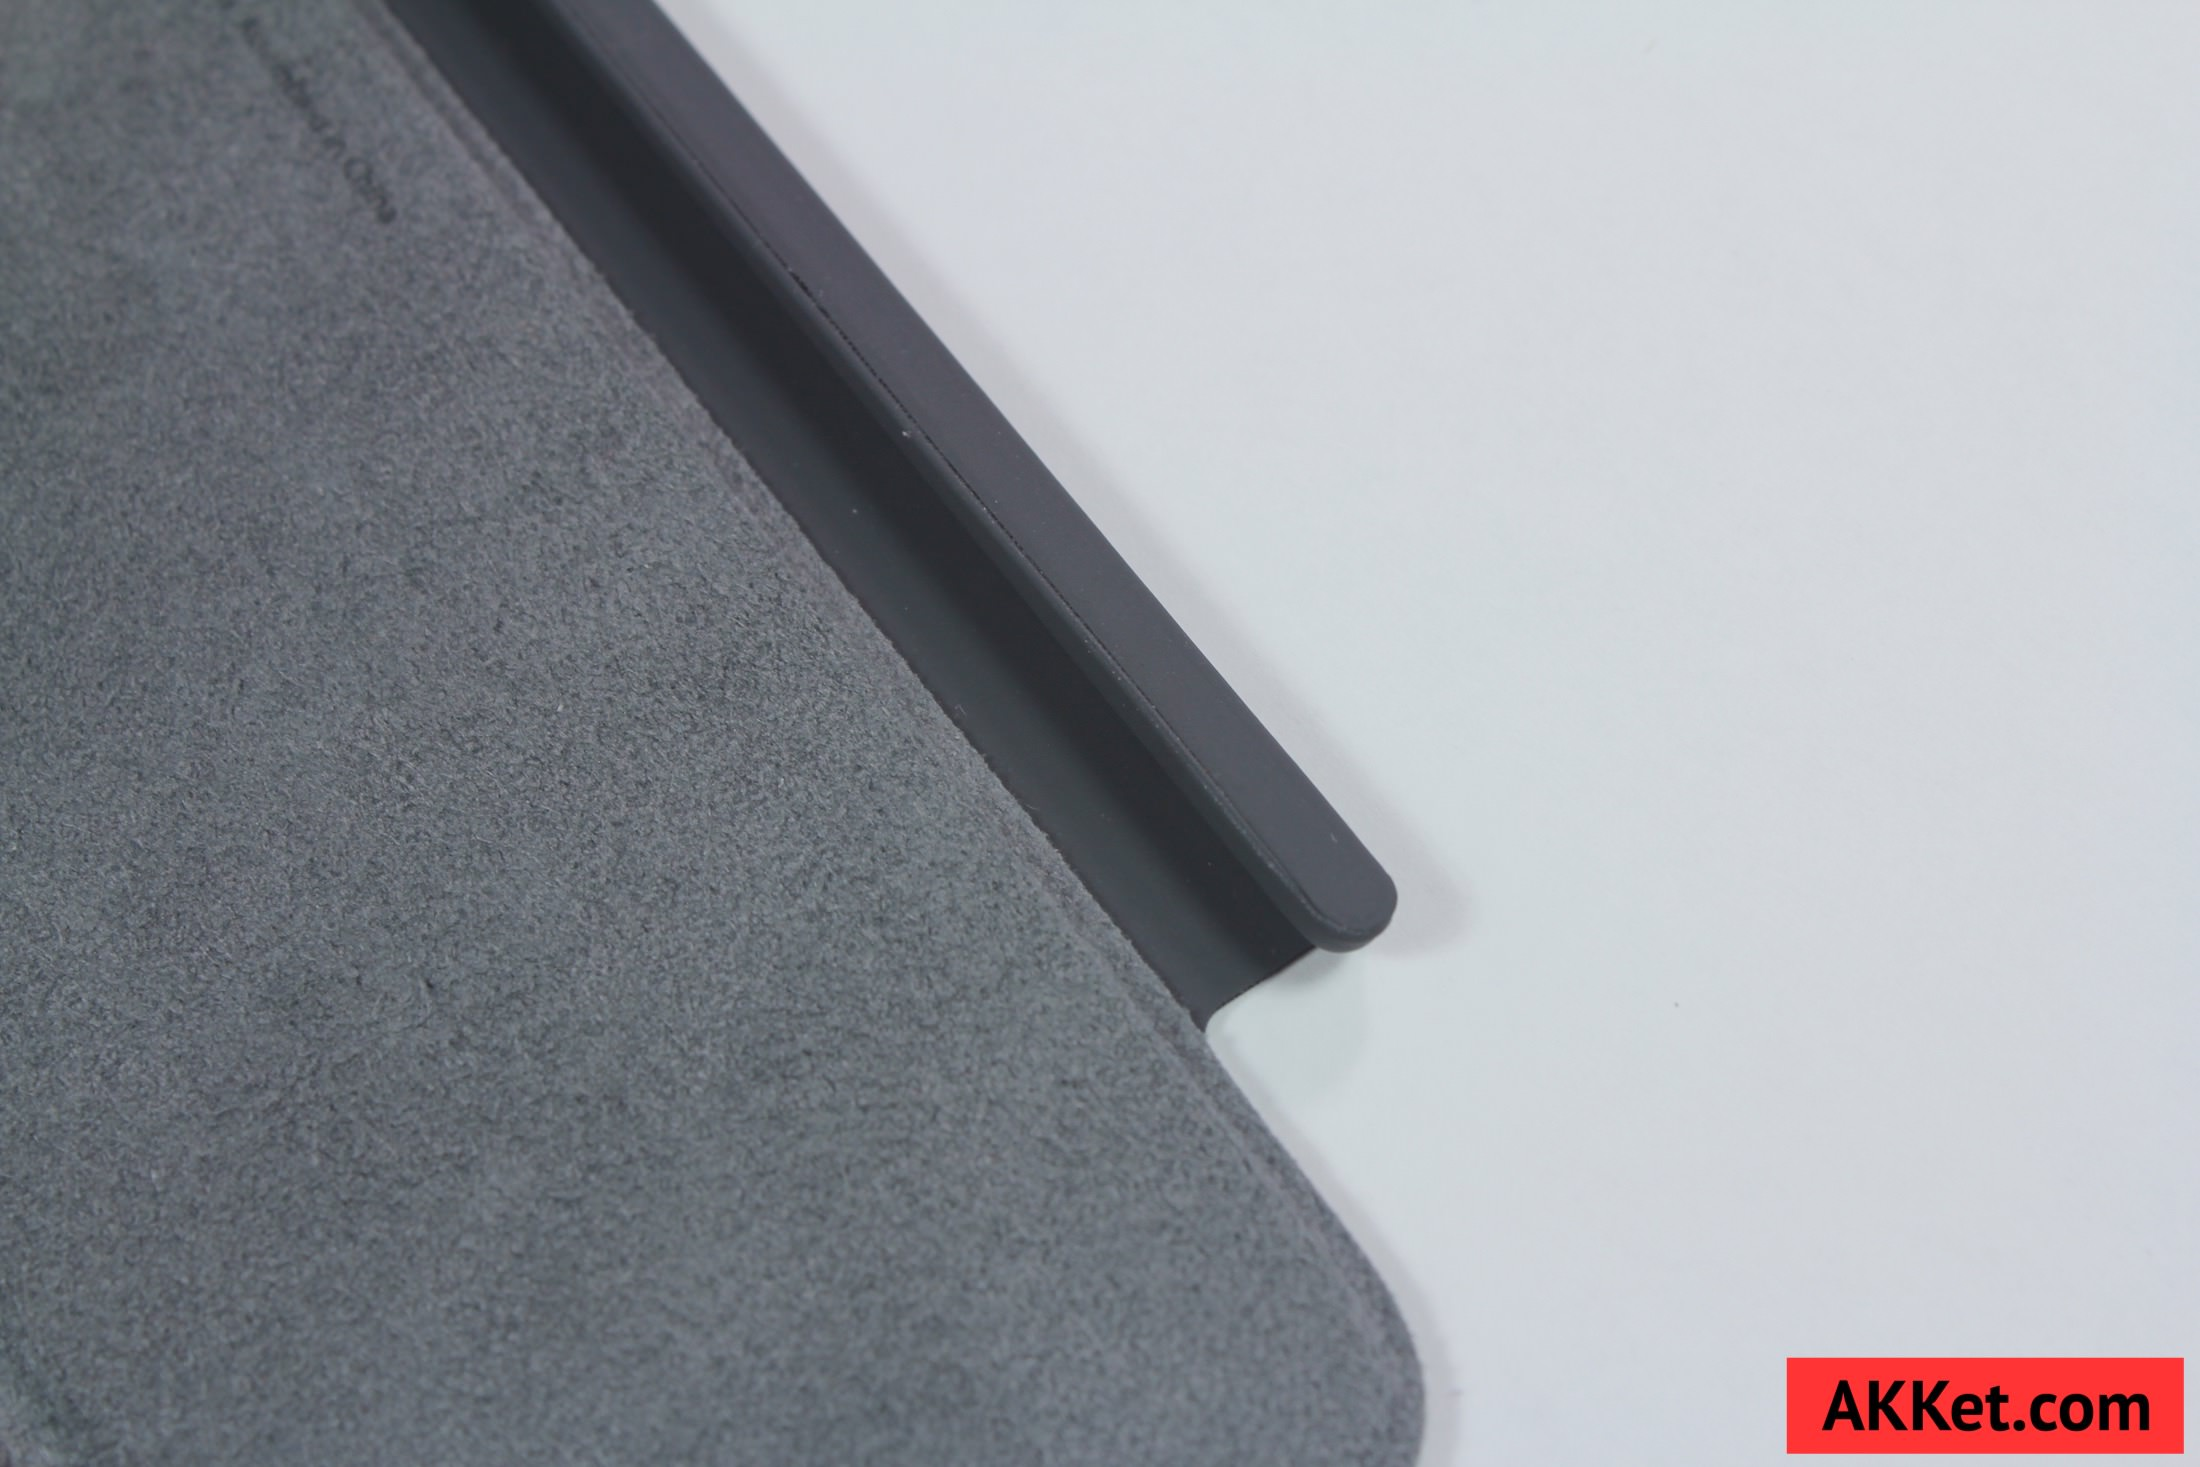 Apple Smart Cover iPad mini 4 review Charcoal Gray 16